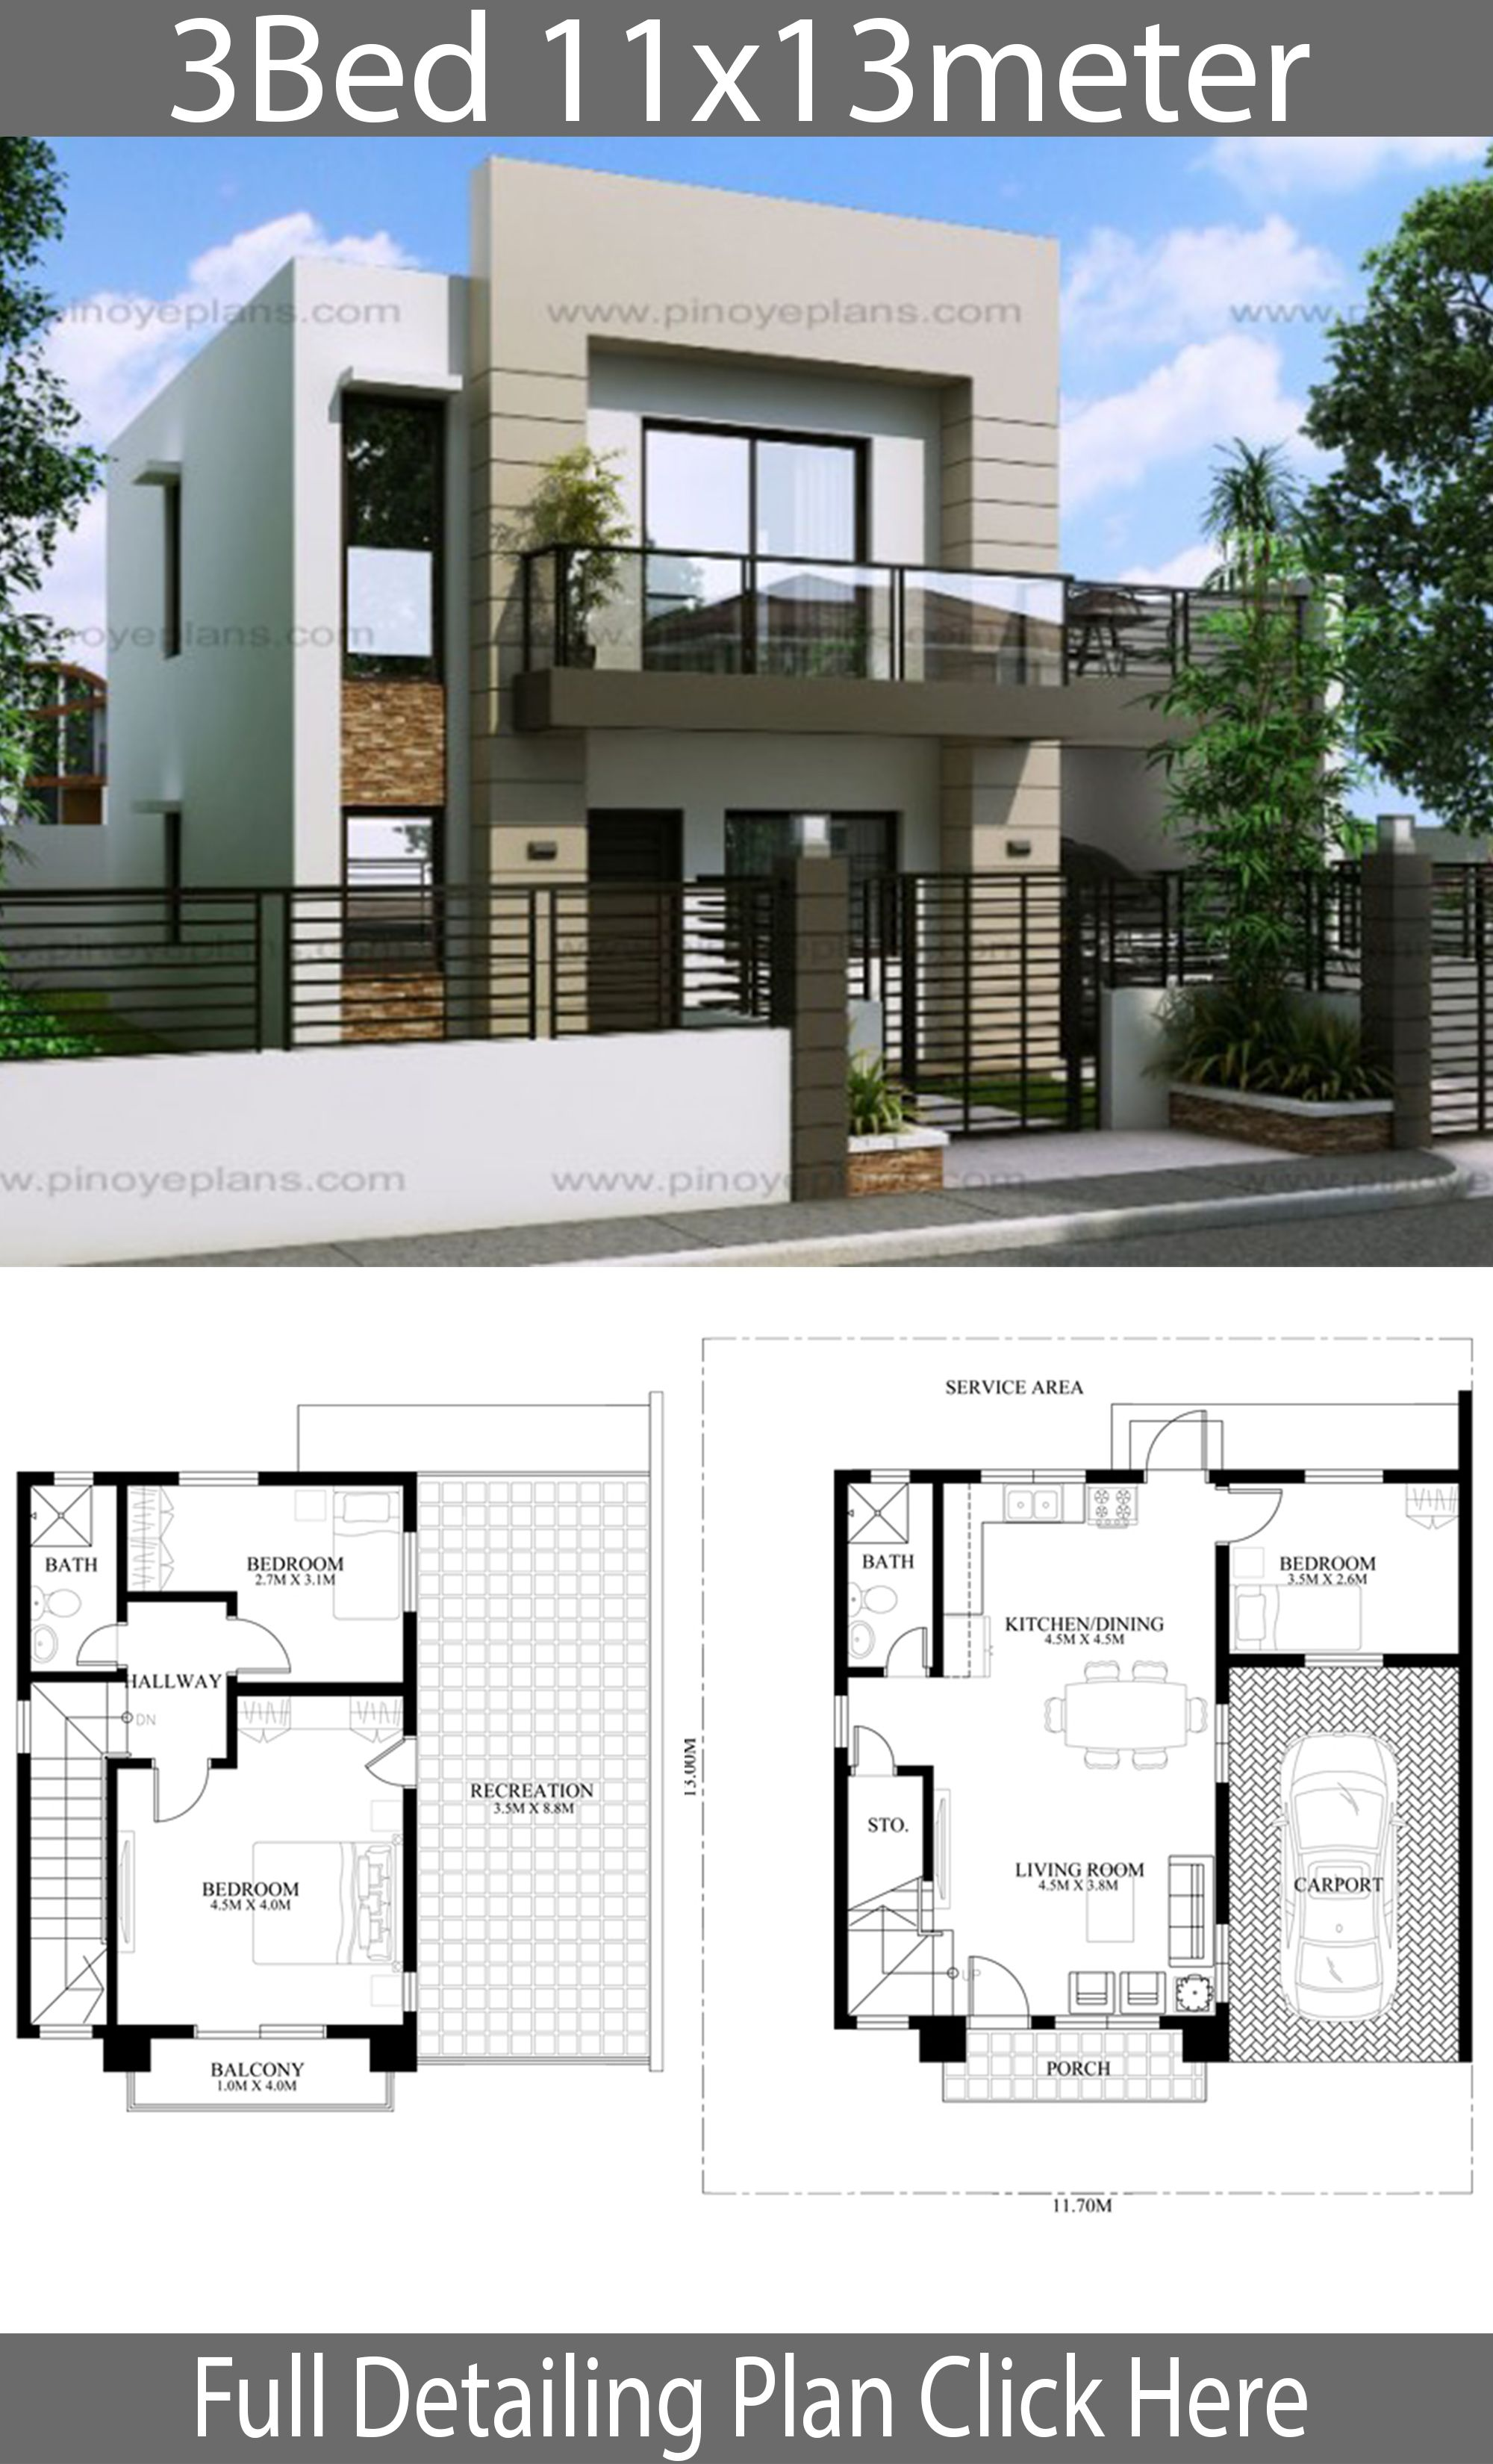 House Design 11x13m With 3 Bedrooms House Idea Philippines House Design Home Design Floor Plans House Construction Plan